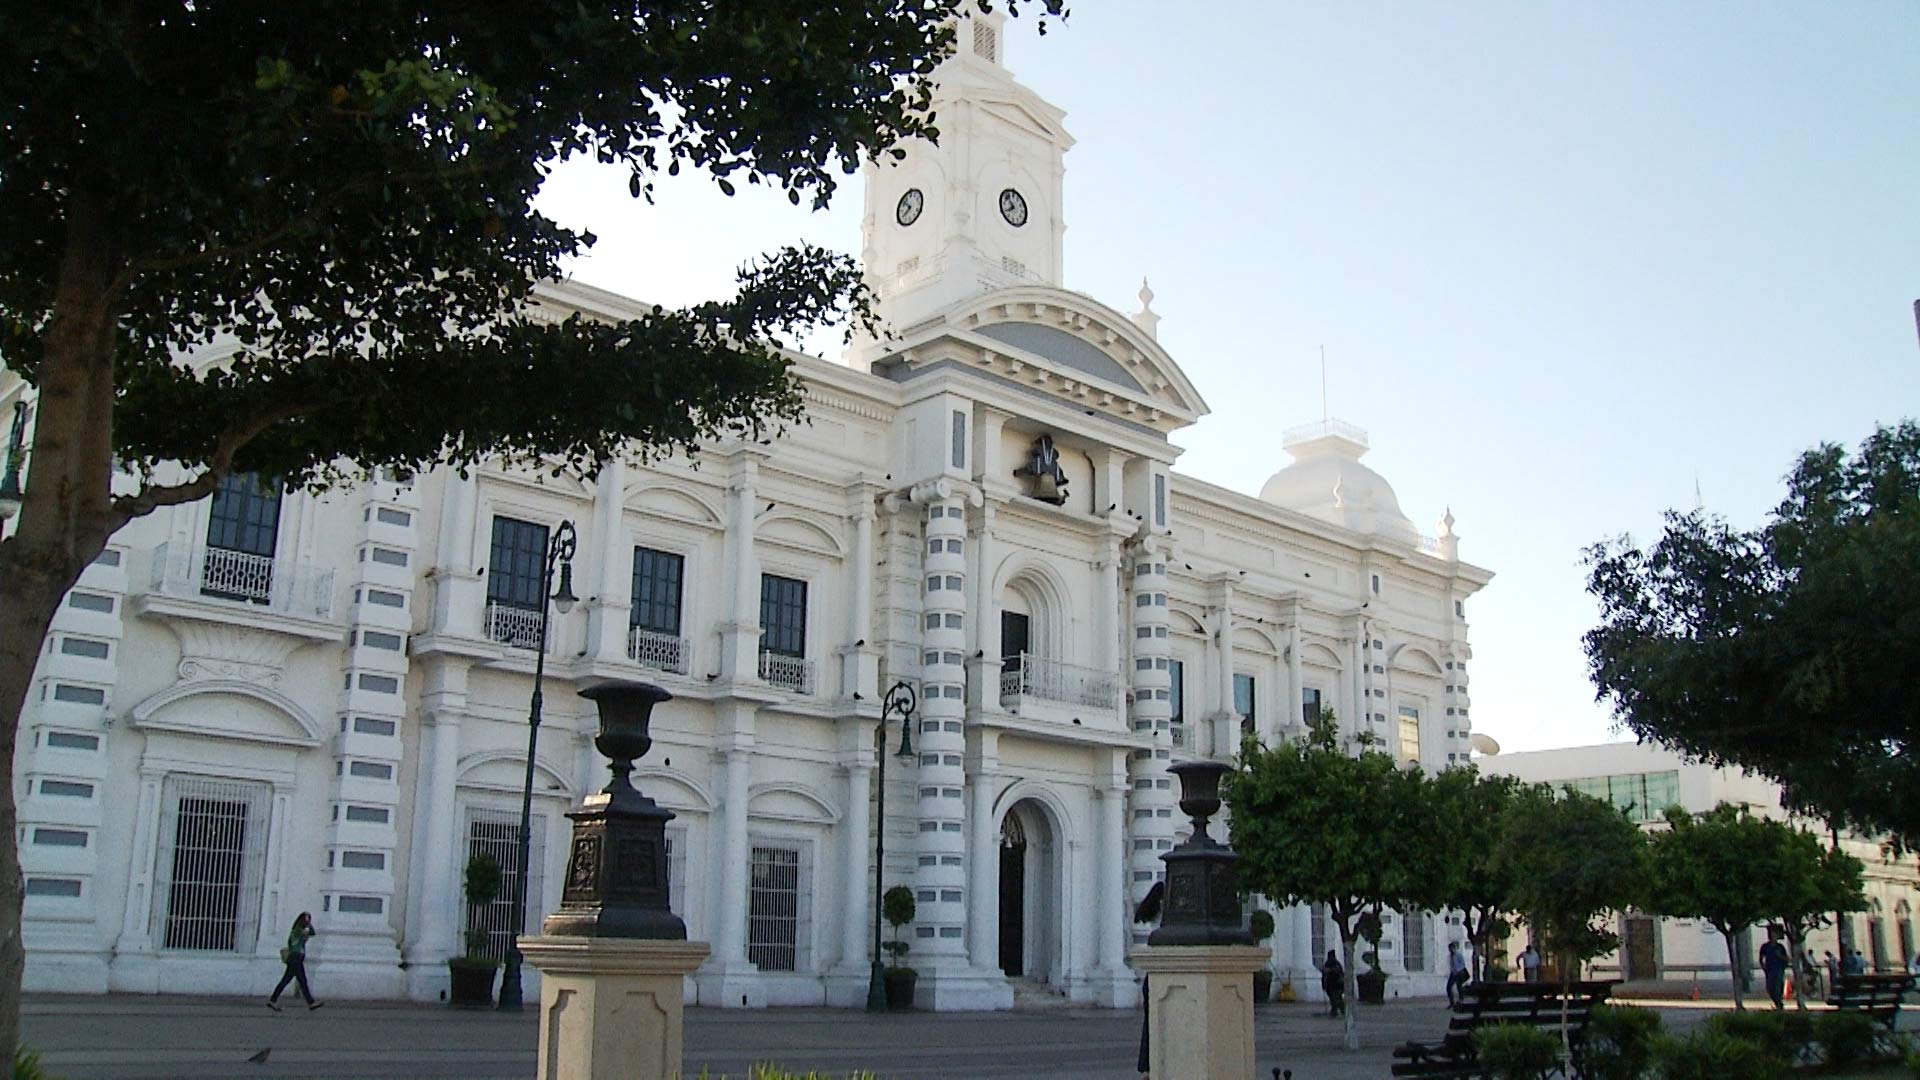 File photo of the Palacio de Gobierno de Sonora, or Government Palace of Sonora, in Hermosillo, Mexico.